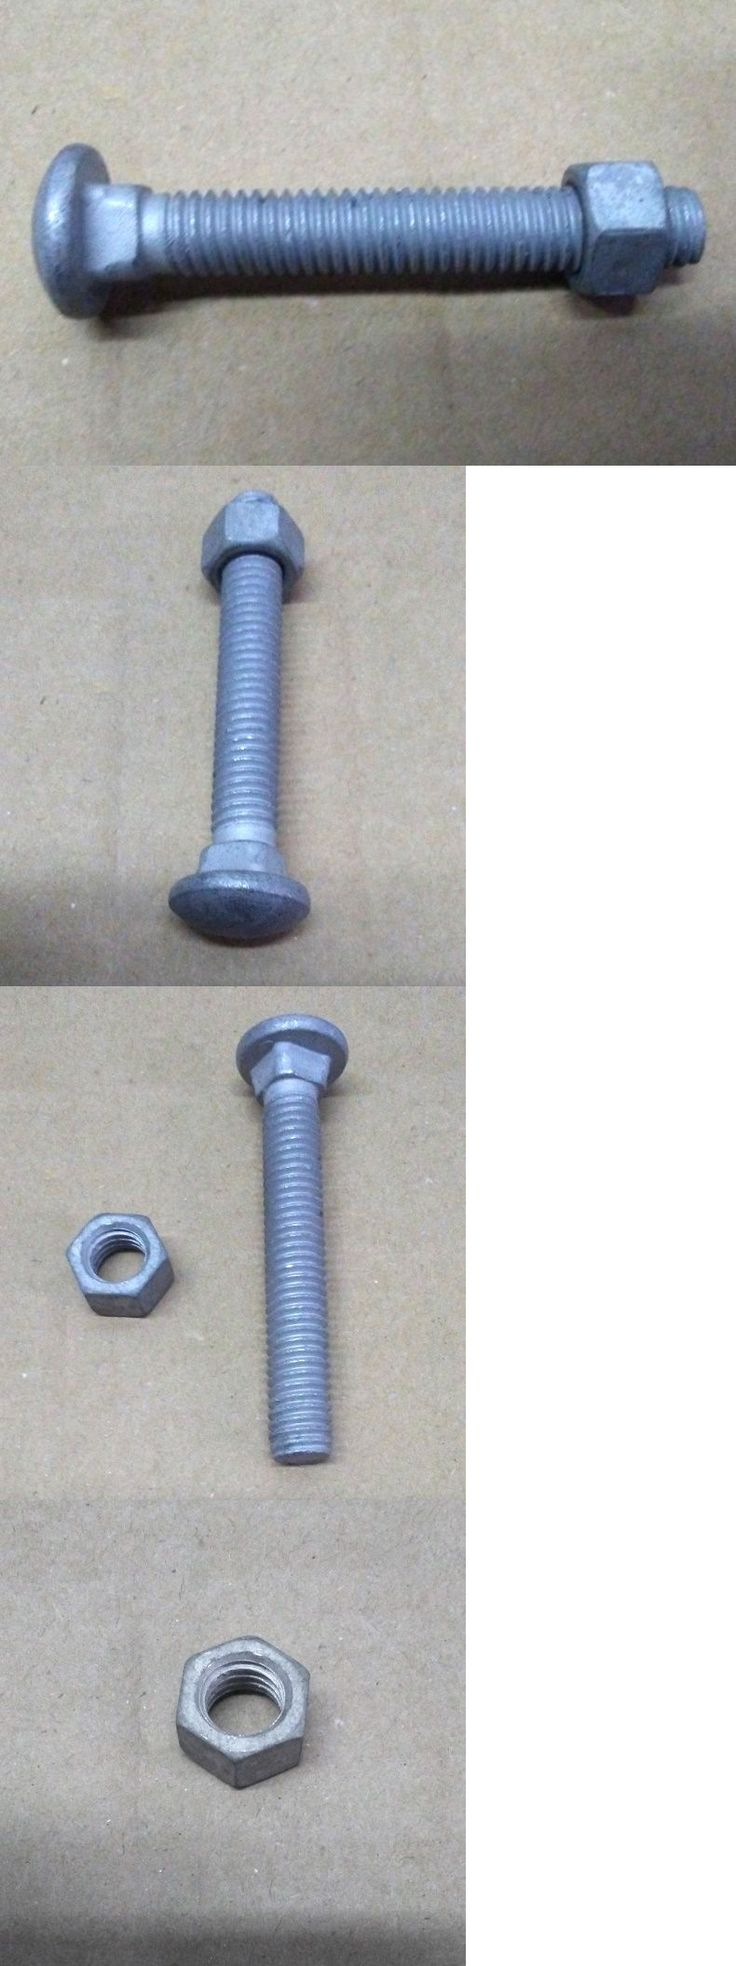 Screws and Bolts 180976: 3 8 X 2 1 2 Carriage Bolt With Nut (Lot Of 100) -> BUY IT NOW ONLY: $34 on eBay!